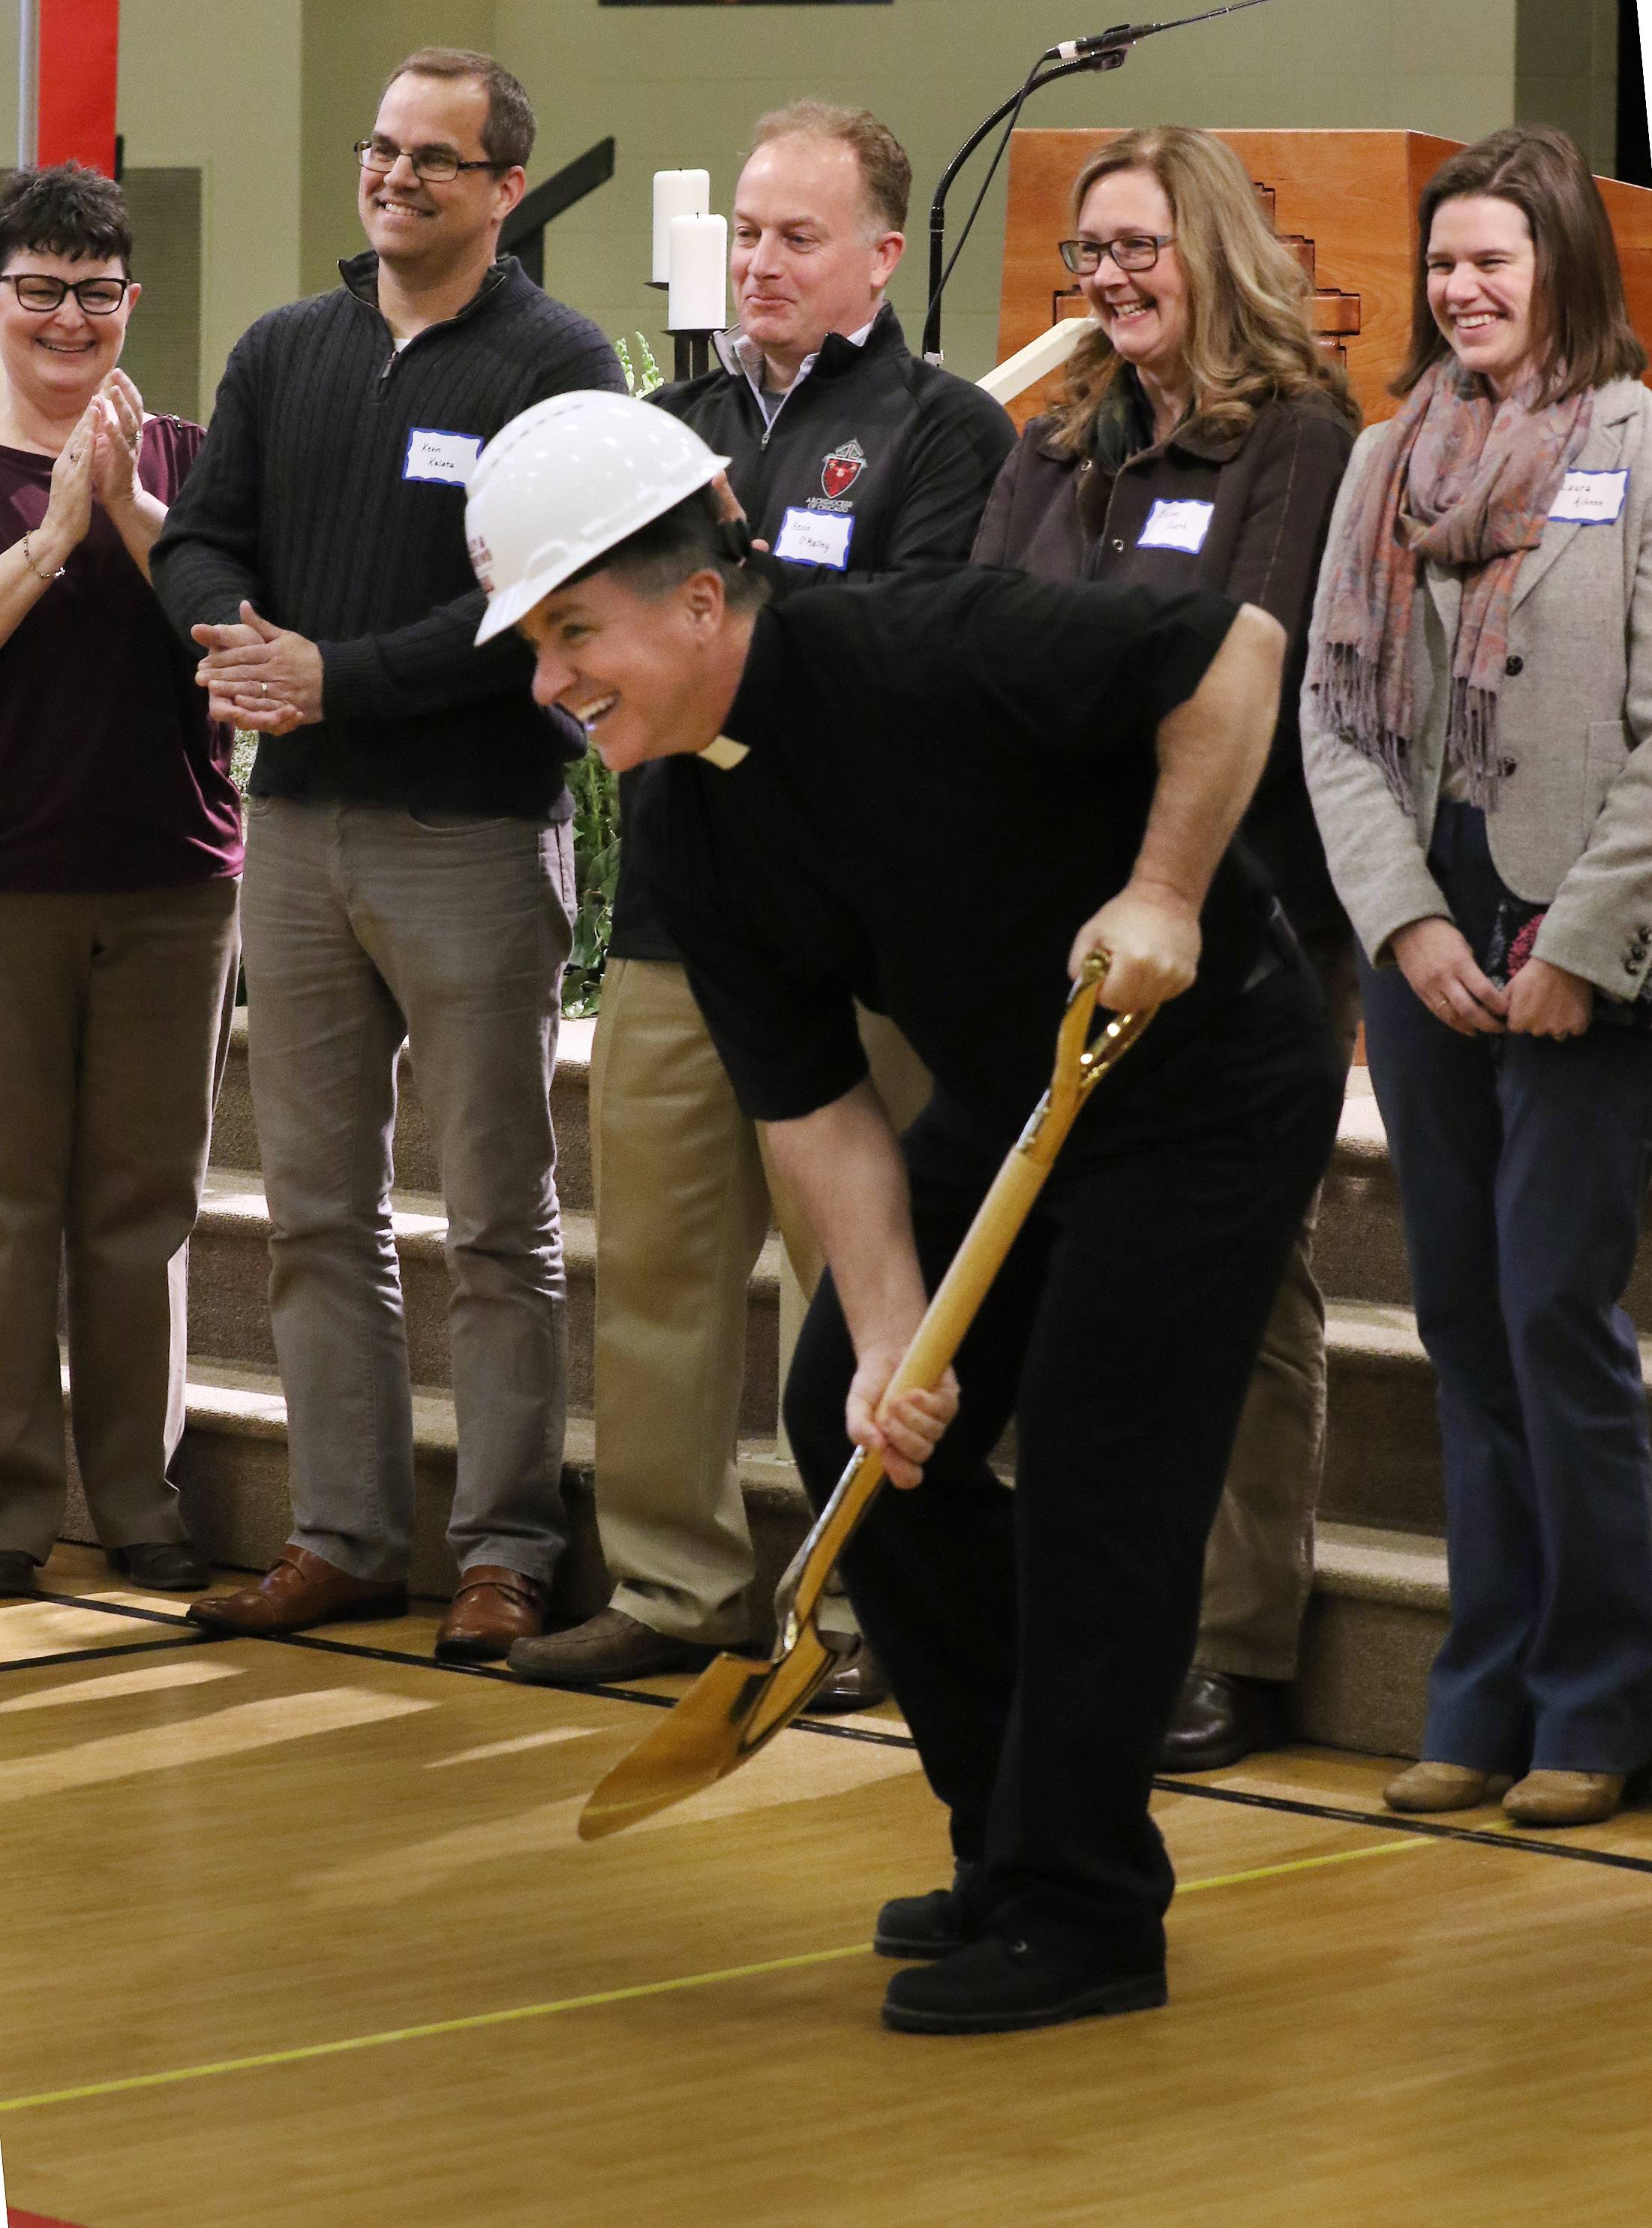 The Rev. Matt Foley pretends to dig Sunday during a groundbreaking and blessing ceremony at St. James Catholic Church in Arlington Heights. The ceremony officially kicked off a long-awaited, $10.5 million expansion of the church.